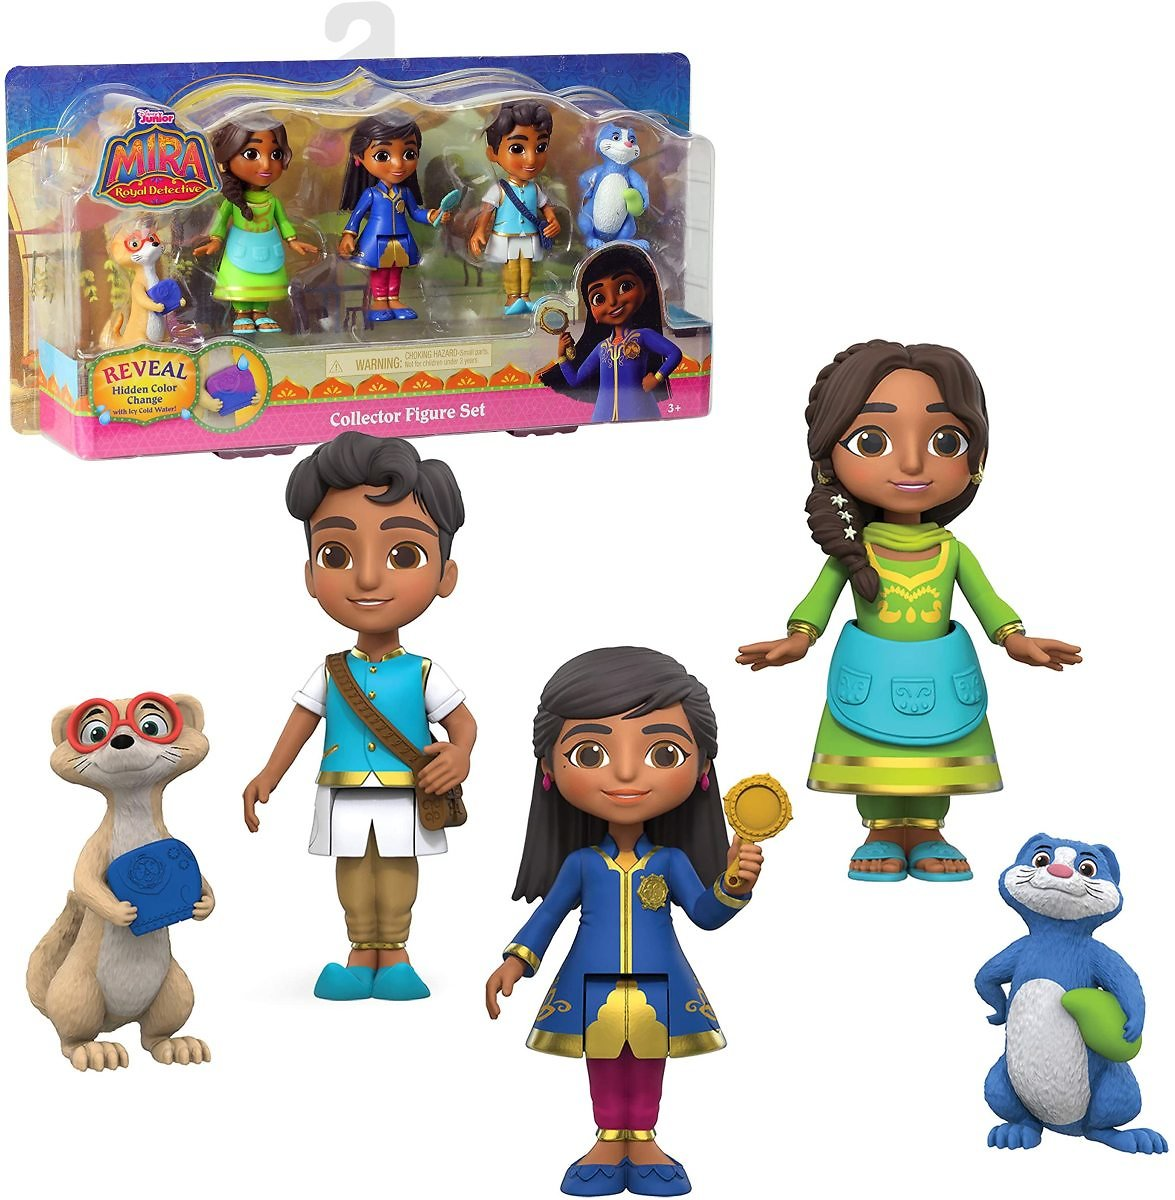 Disney Junior Mira, The Royal Detective Collector Figure Set By Just Play